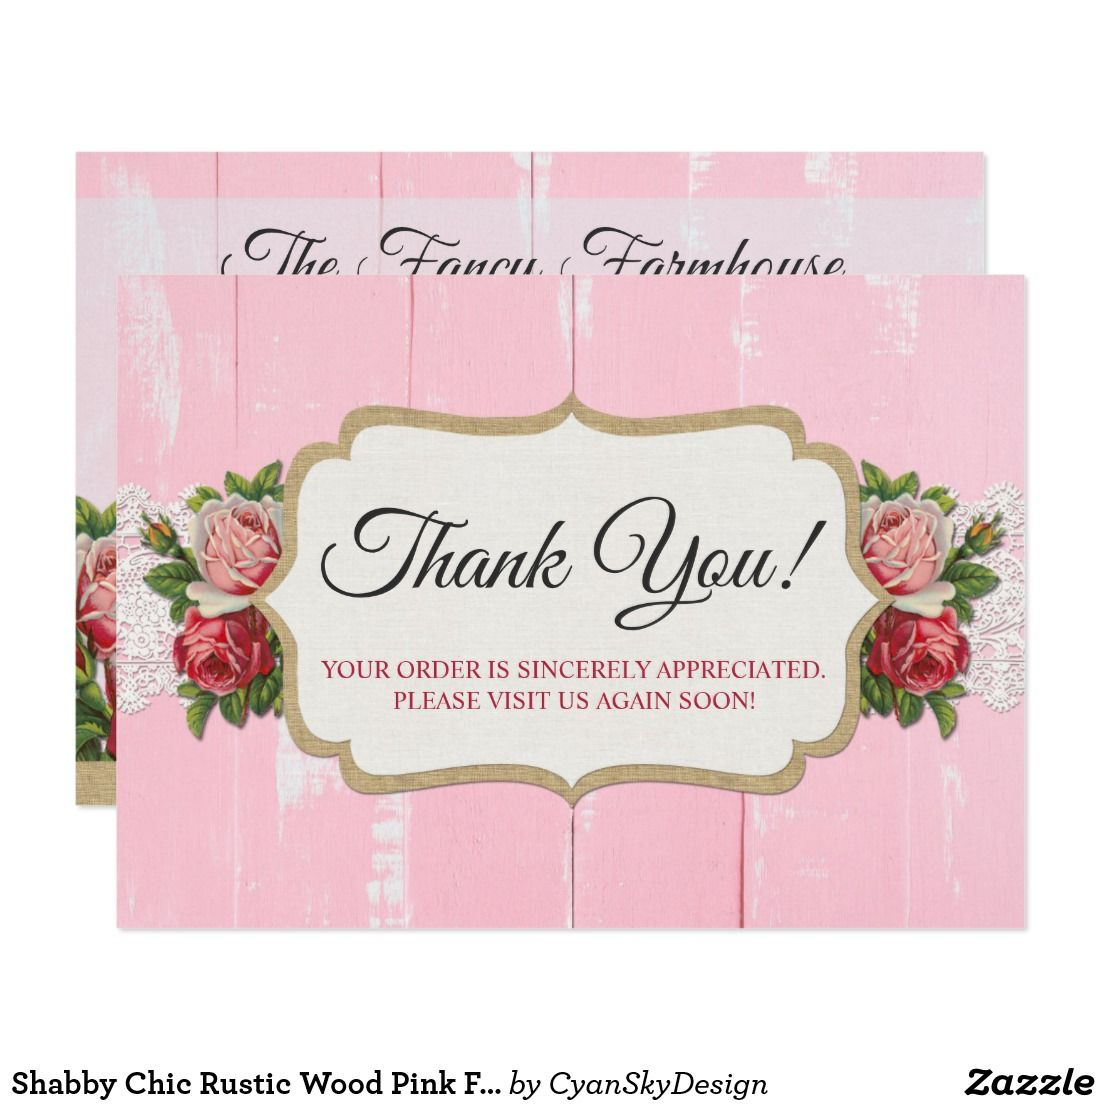 Shabby Chic Rustic Wood Pink Floral Thank You Card Zazzle Com